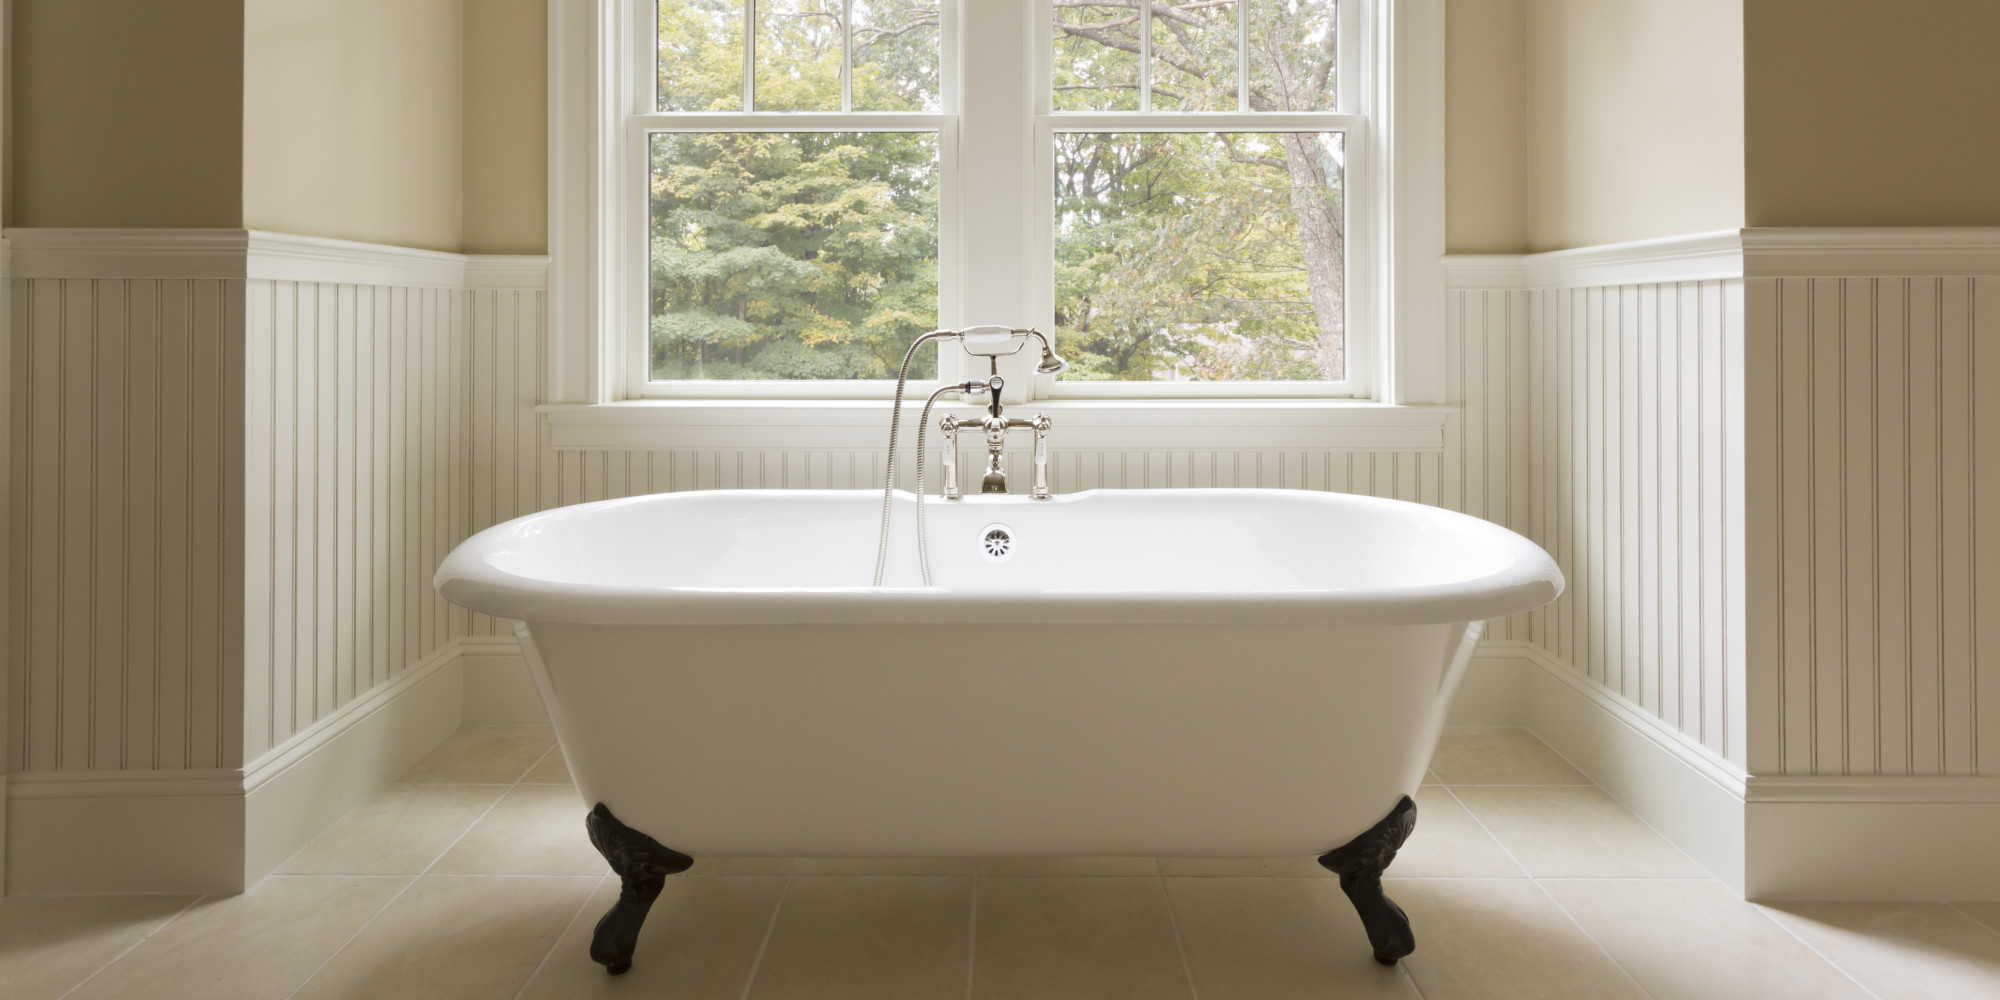 6 Bathtubs To Melt Away The Winter Coldness | HuffPost